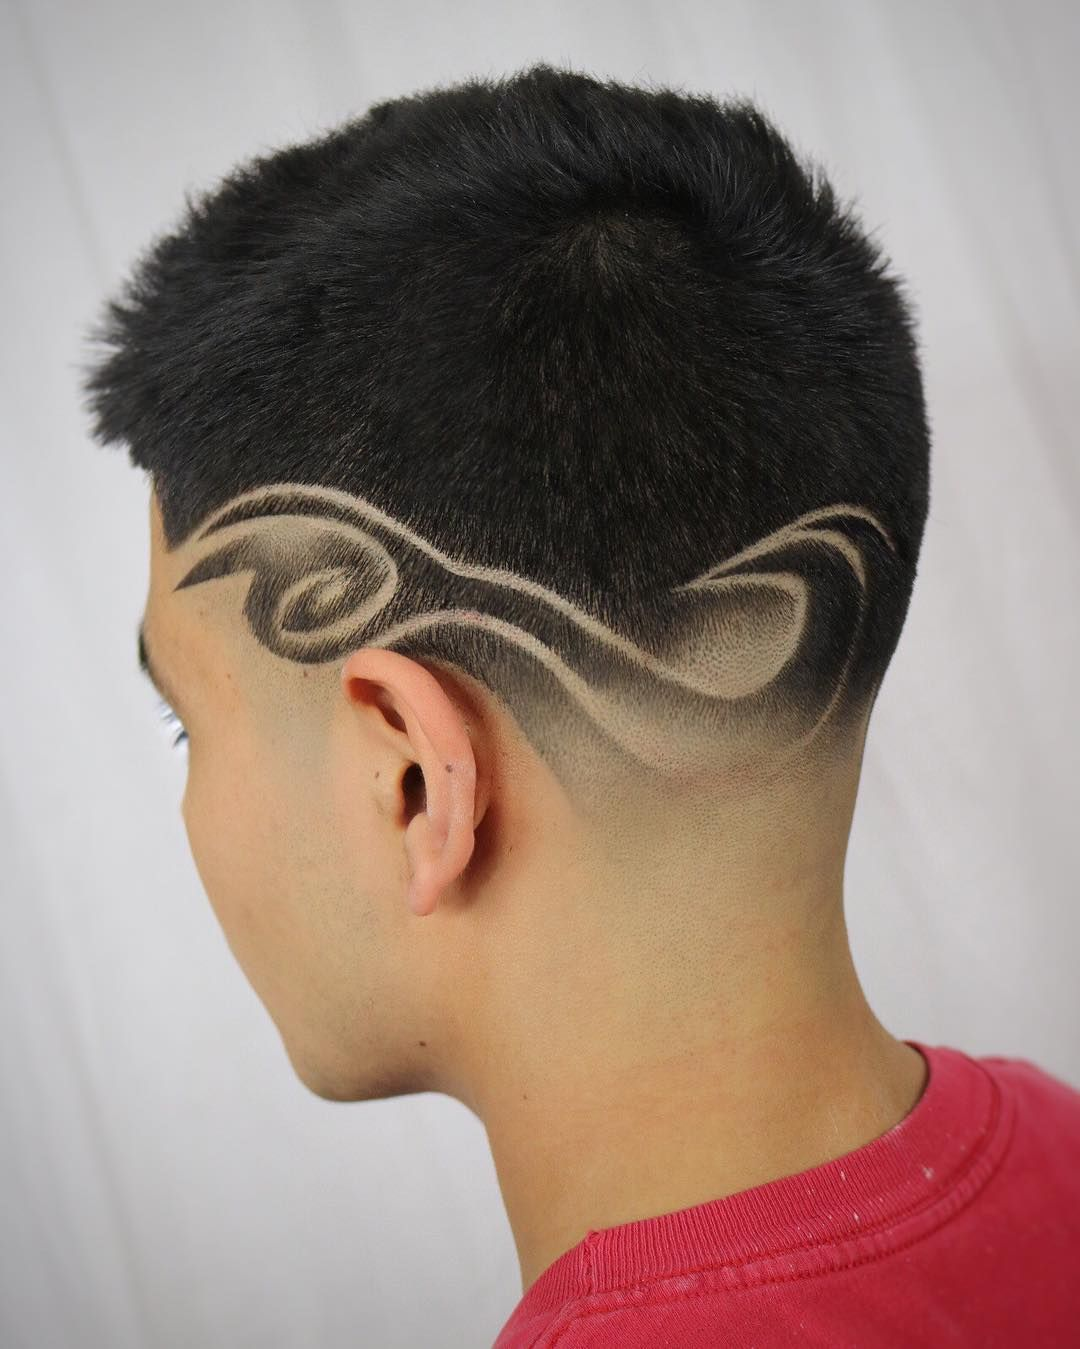 taper fade haircuts with design | taper fade | pinterest | taper